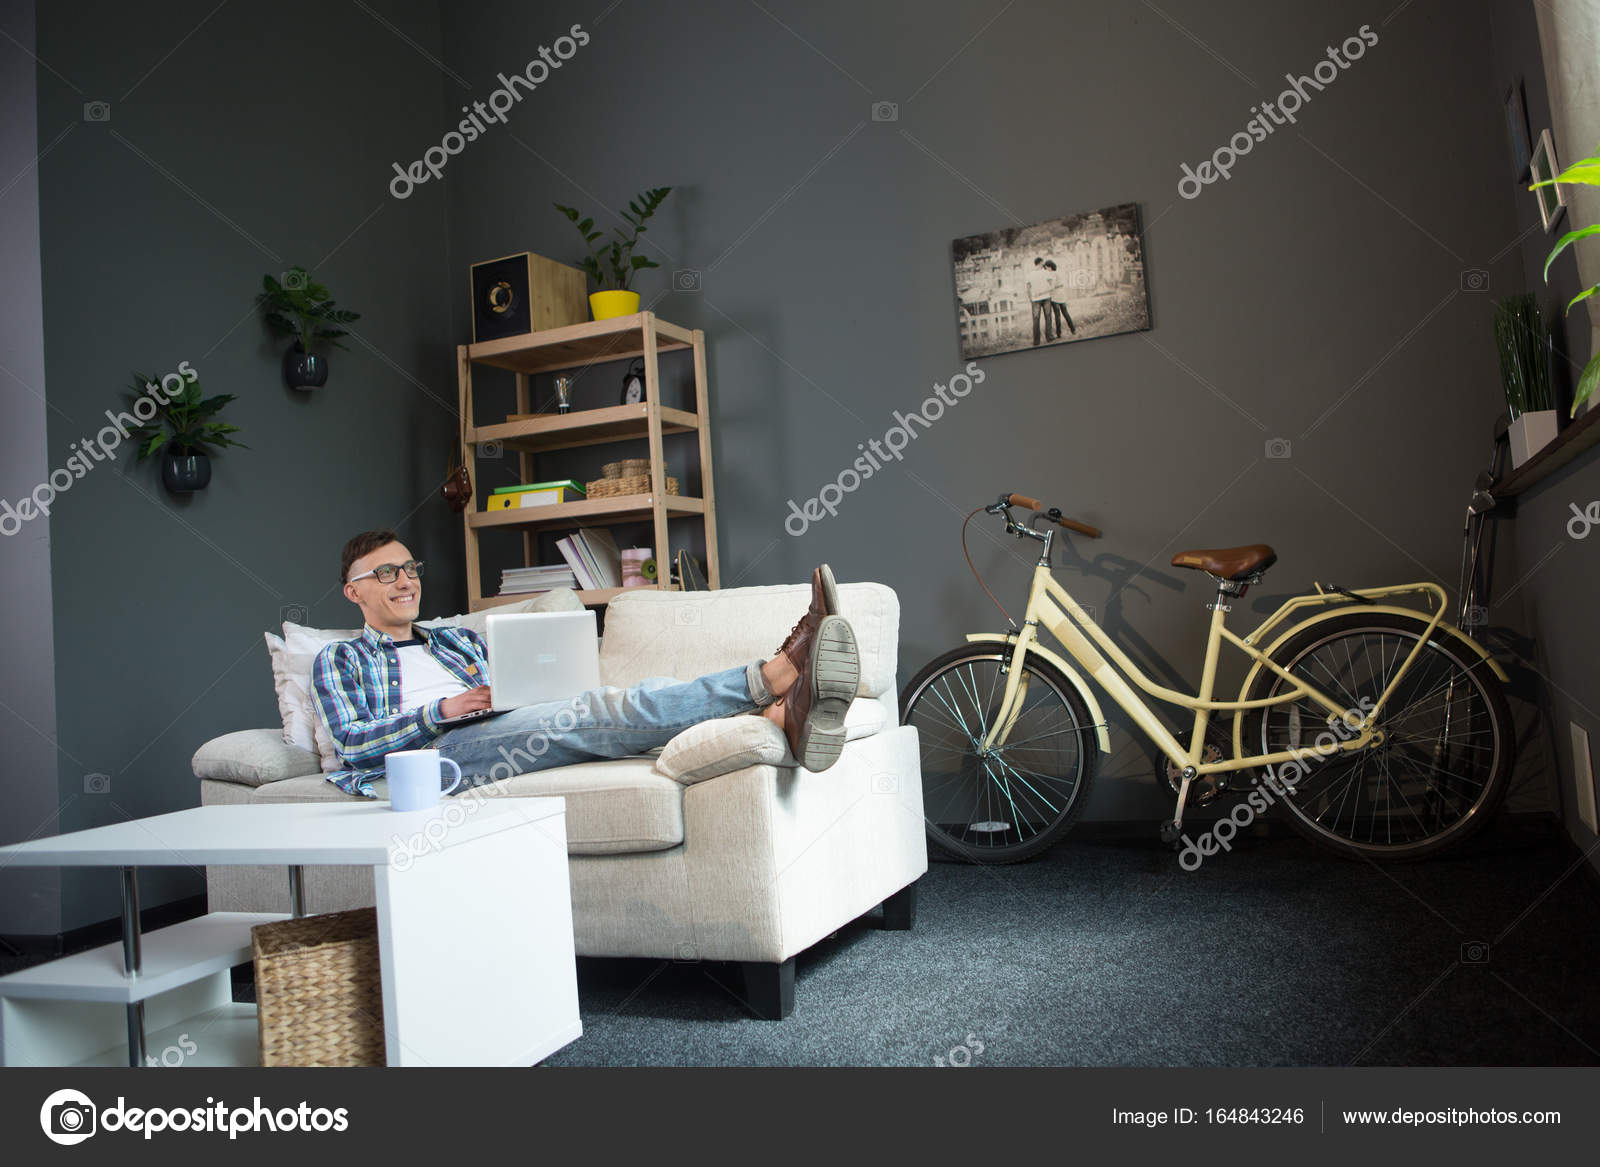 Wondrous Freelancer Man On Sofa Working On Distance From Office Spiritservingveterans Wood Chair Design Ideas Spiritservingveteransorg